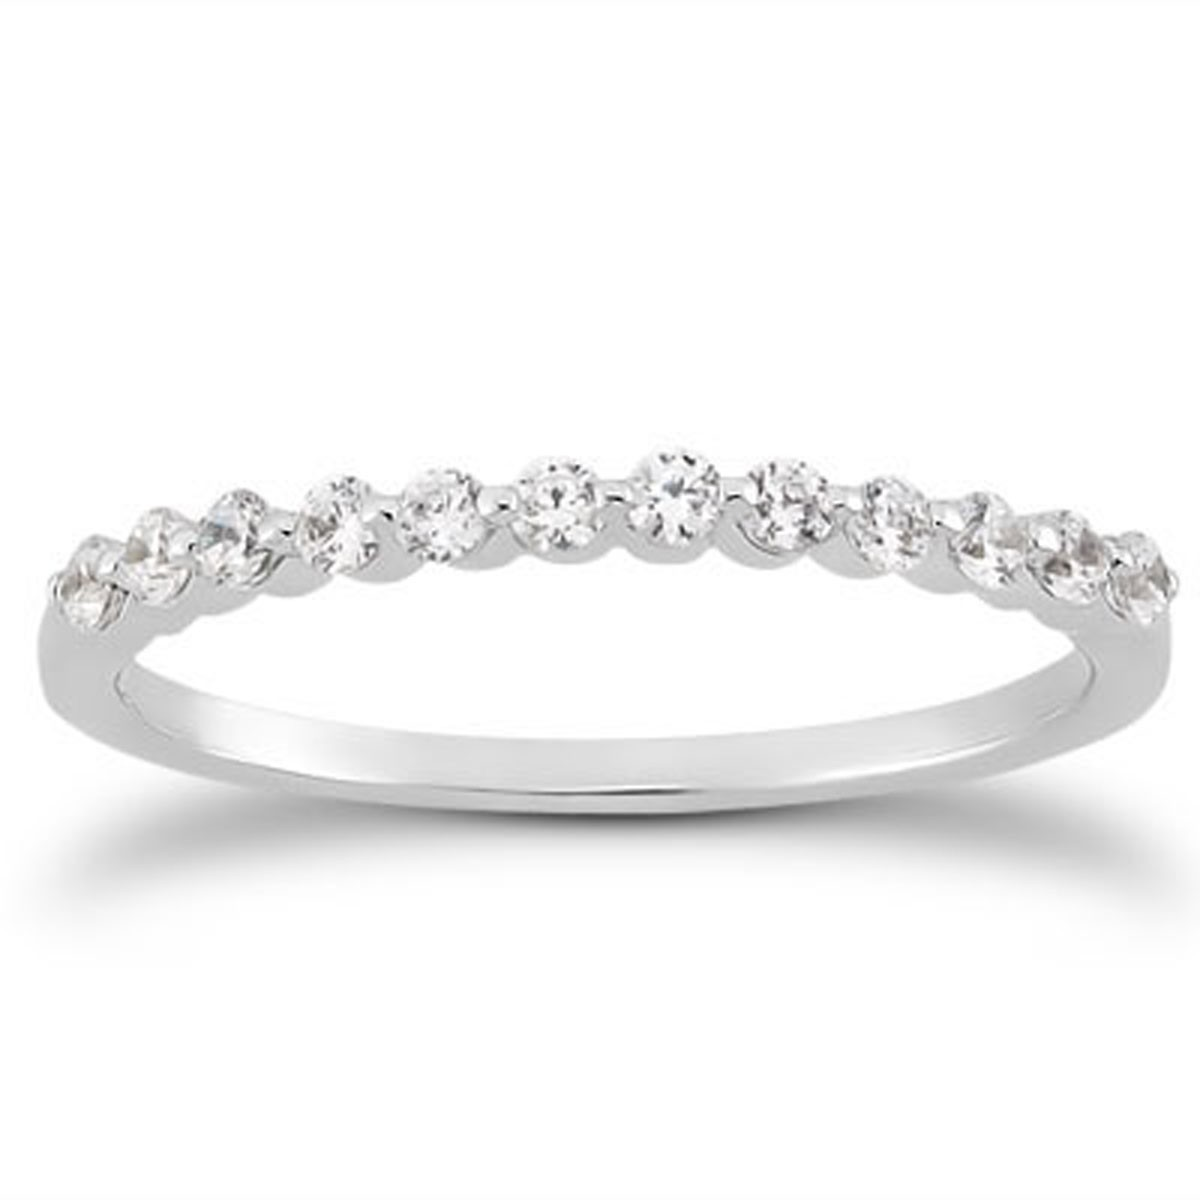 de92b19145c Single Shared Prong Diamond Wedding Ring Band in 14k White Gold - Richard  Cannon Jewelry